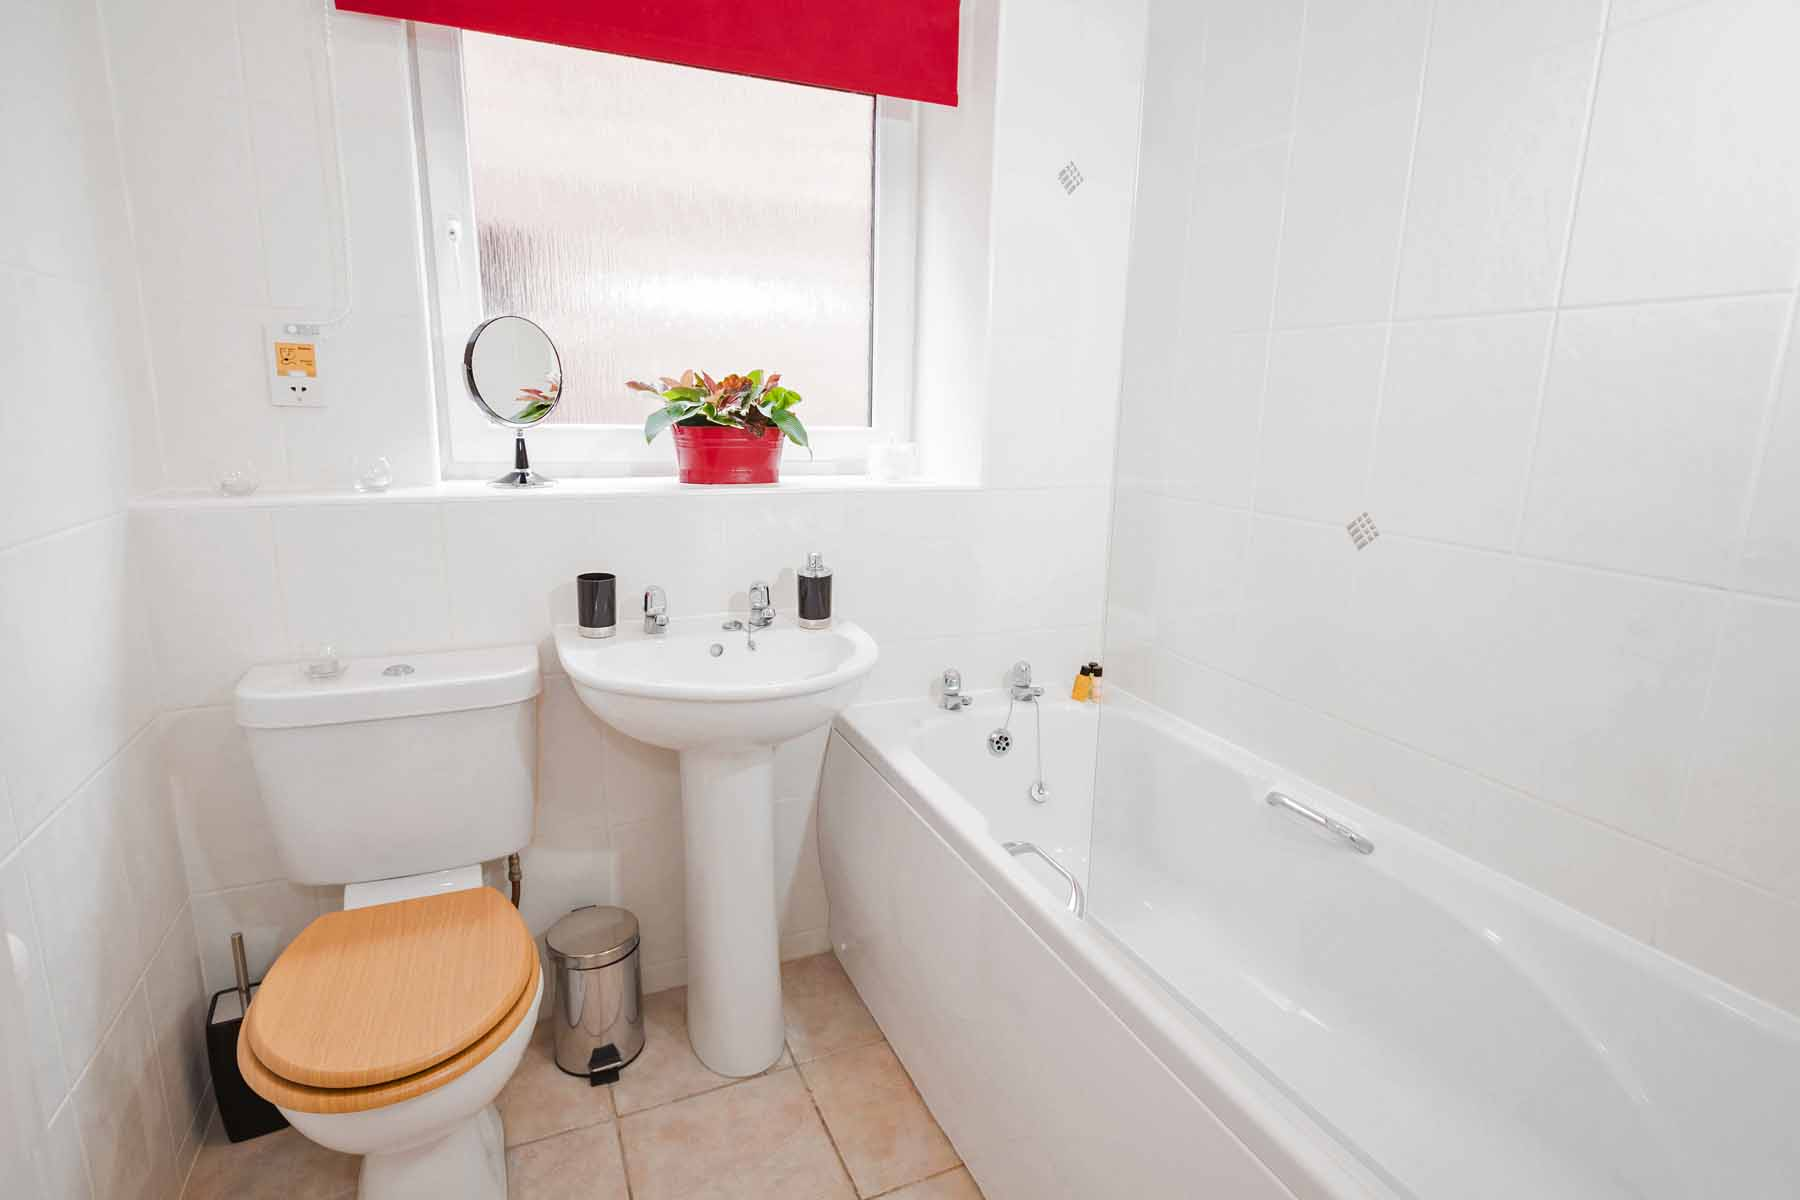 Cloisters Walk, Holiday Let, york stay, Bathroom